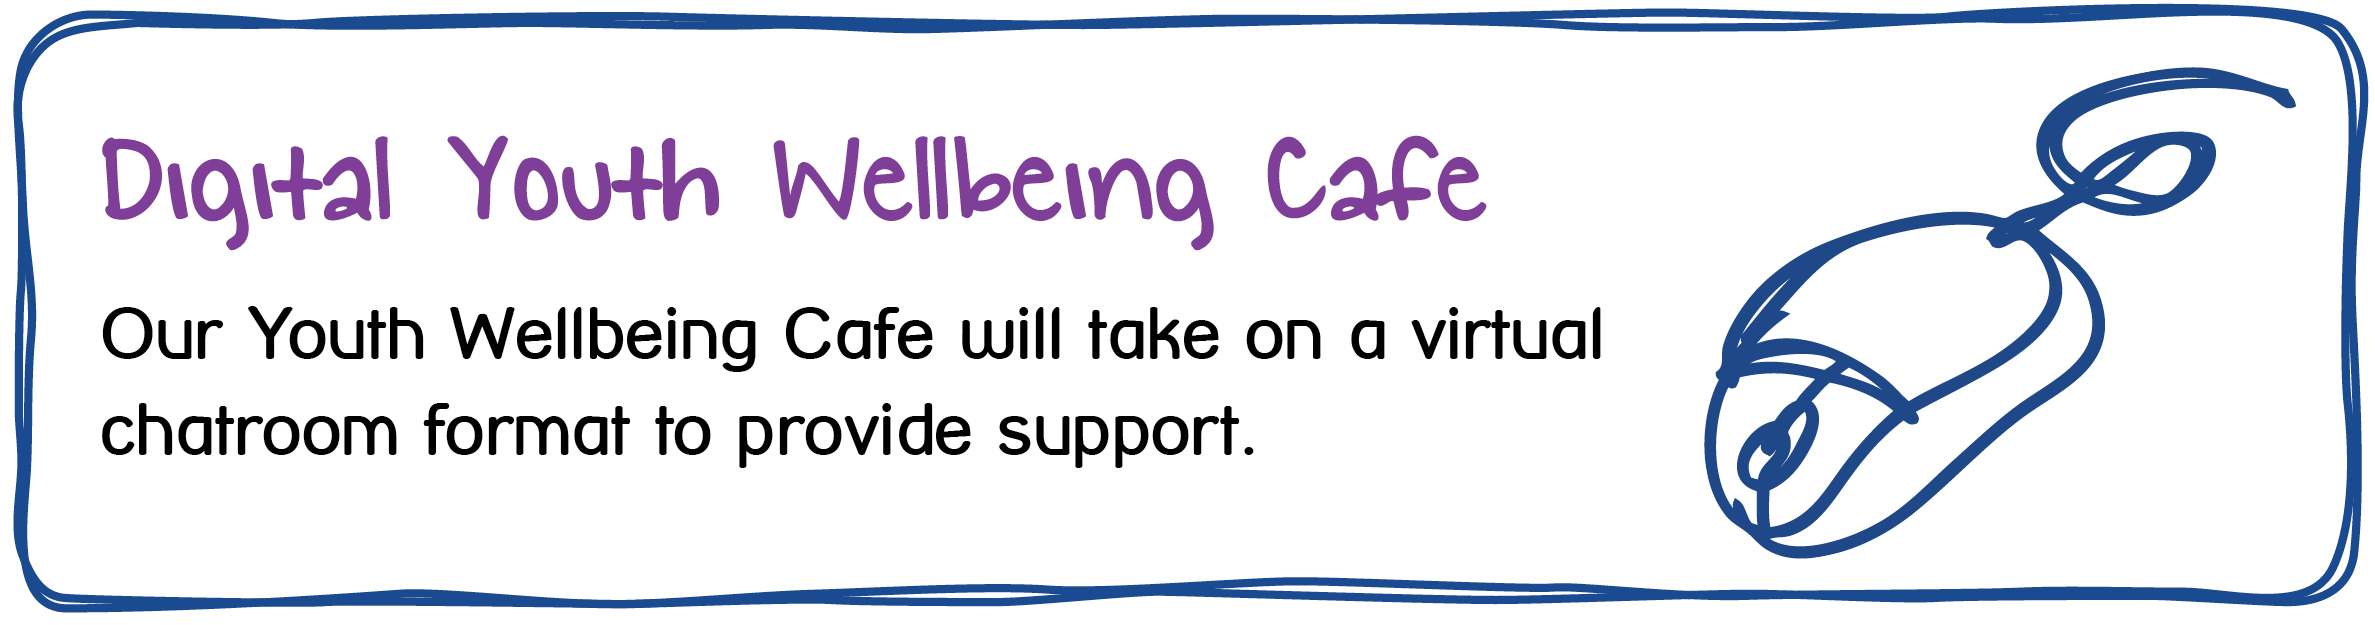 Digital Maidstone Youth Wellbeing Cafe. Our Youth Wellbeing Cafe will take on a virtual chatroom format to provide support.